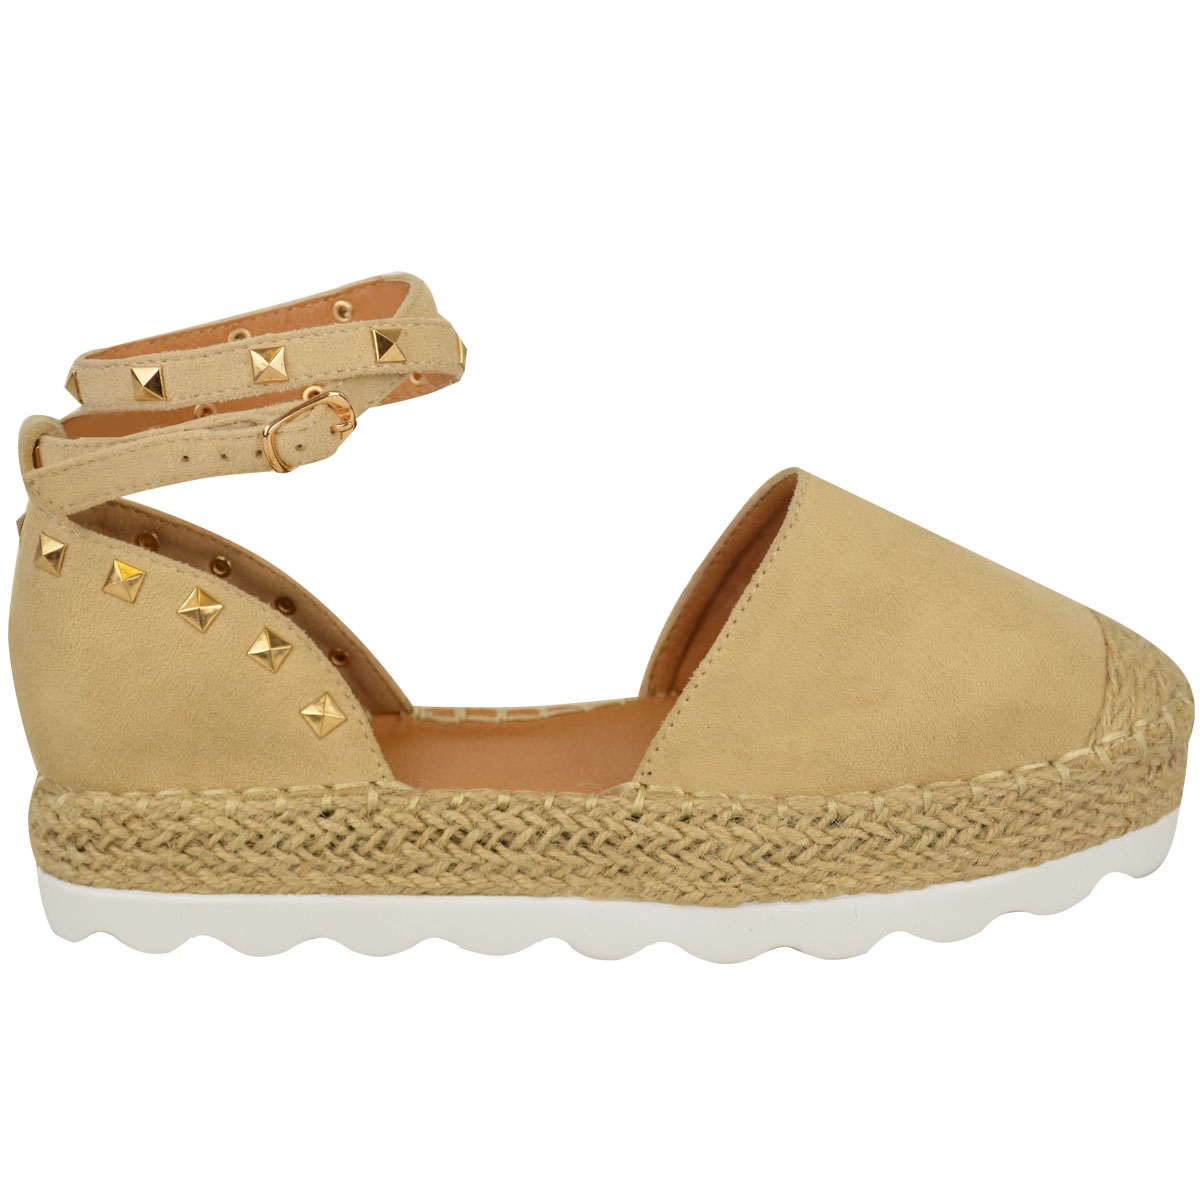 Womens-Ladies-Espadrilles-Flat-Pom-Pom-Sandals-Slip-On-Strappy-Comfy-Size-Shoes thumbnail 11